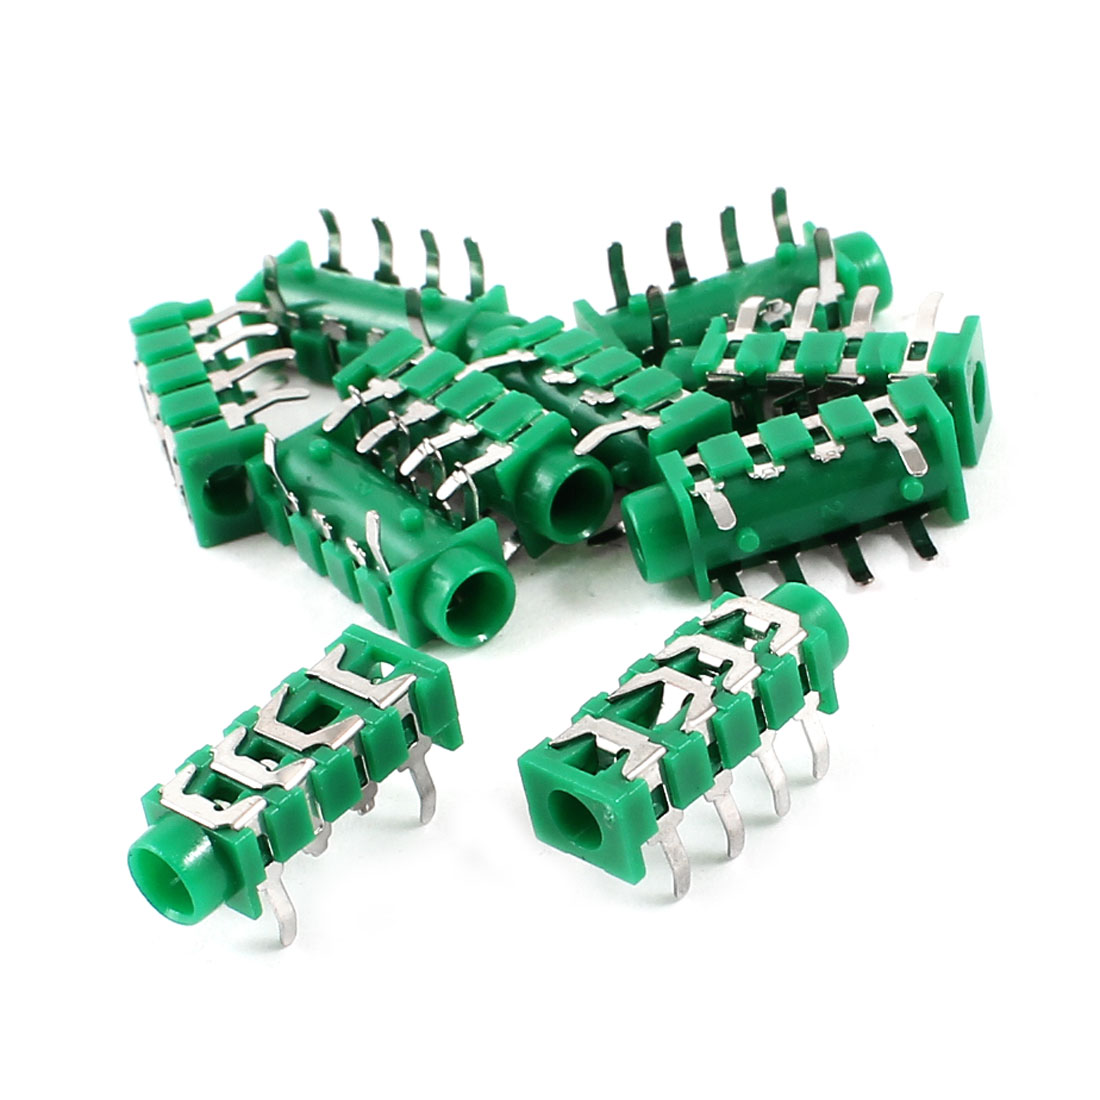 10 Pcs 6 Pin 3.5mm PCB Mounting Stereo Earphone Jack Socket Connector